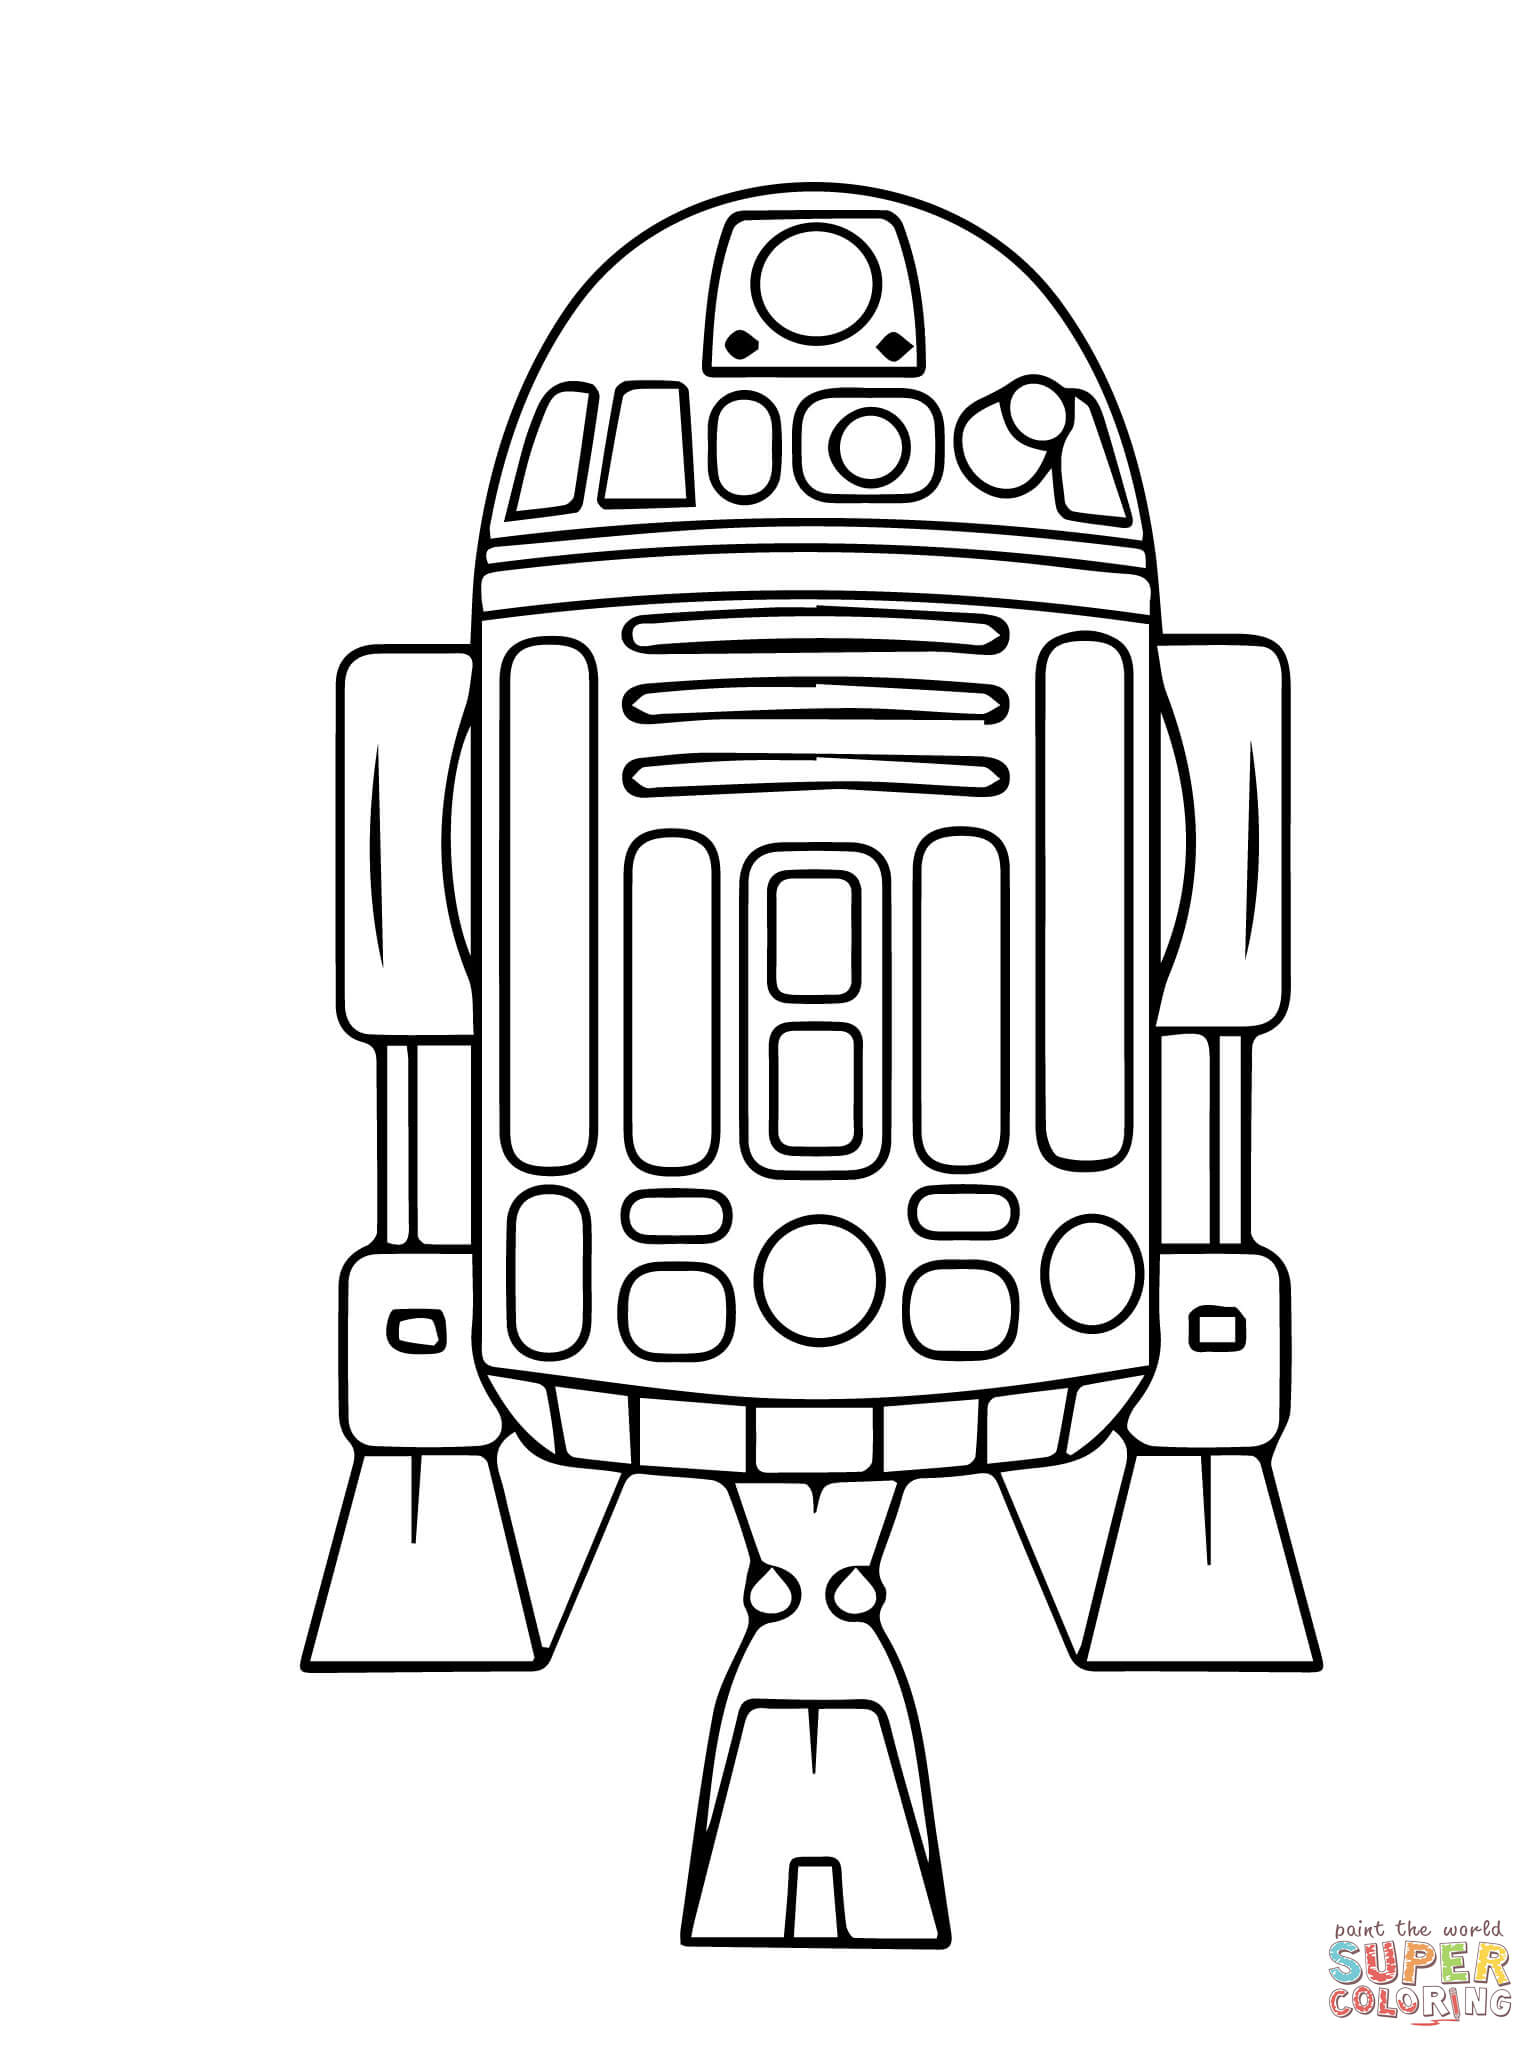 astromech droid r2 d2 coloring page free printable coloring pages